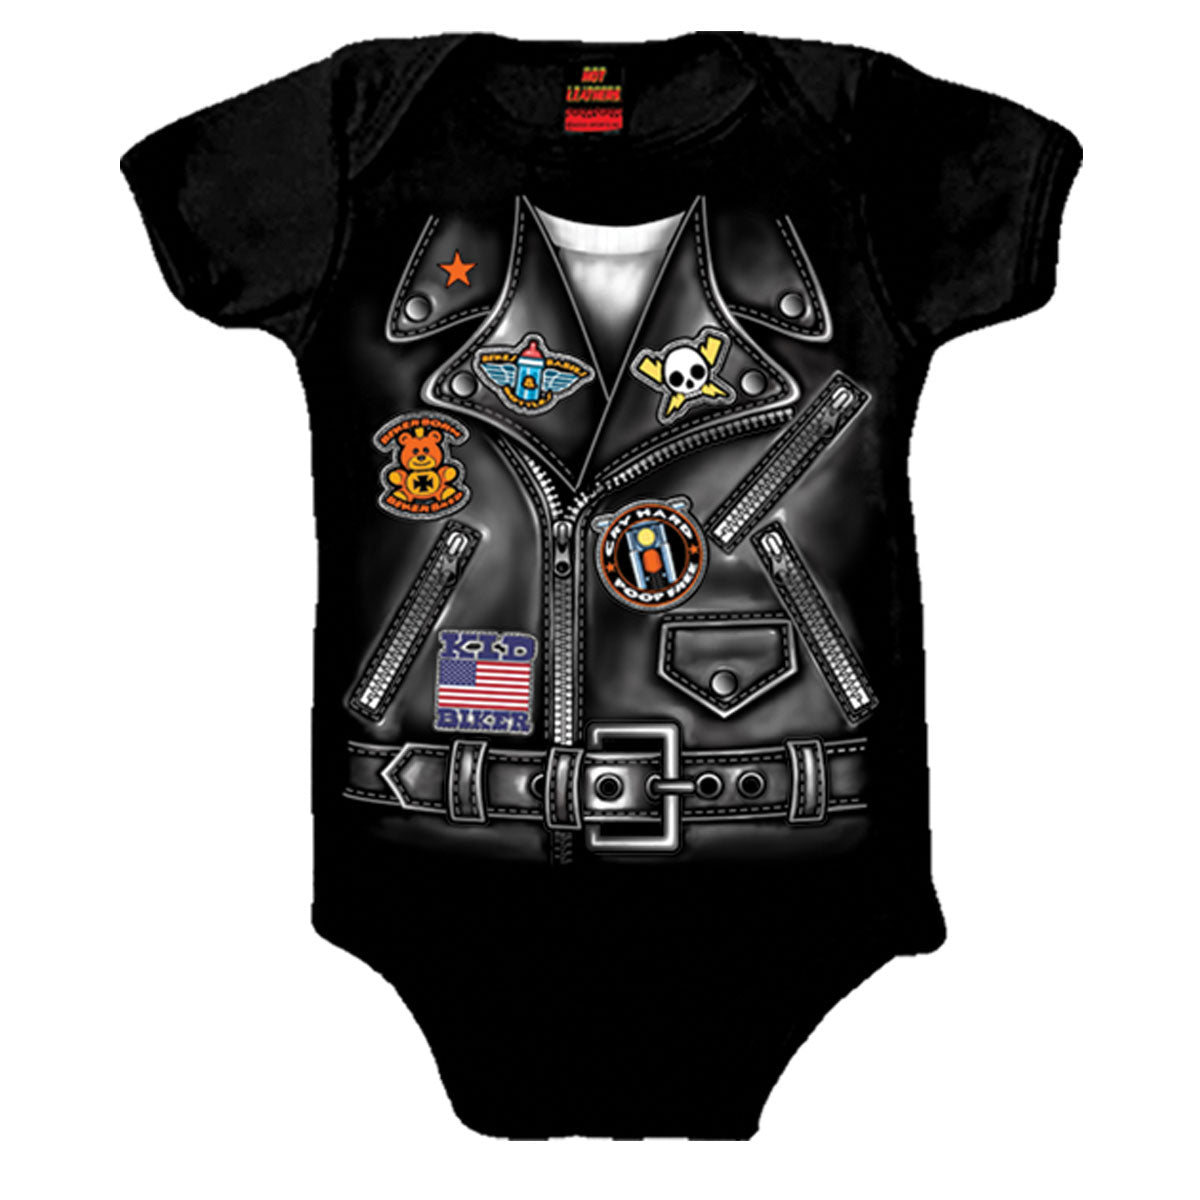 Hot Leathers Boys Leather Jacket Baby Bodysuits